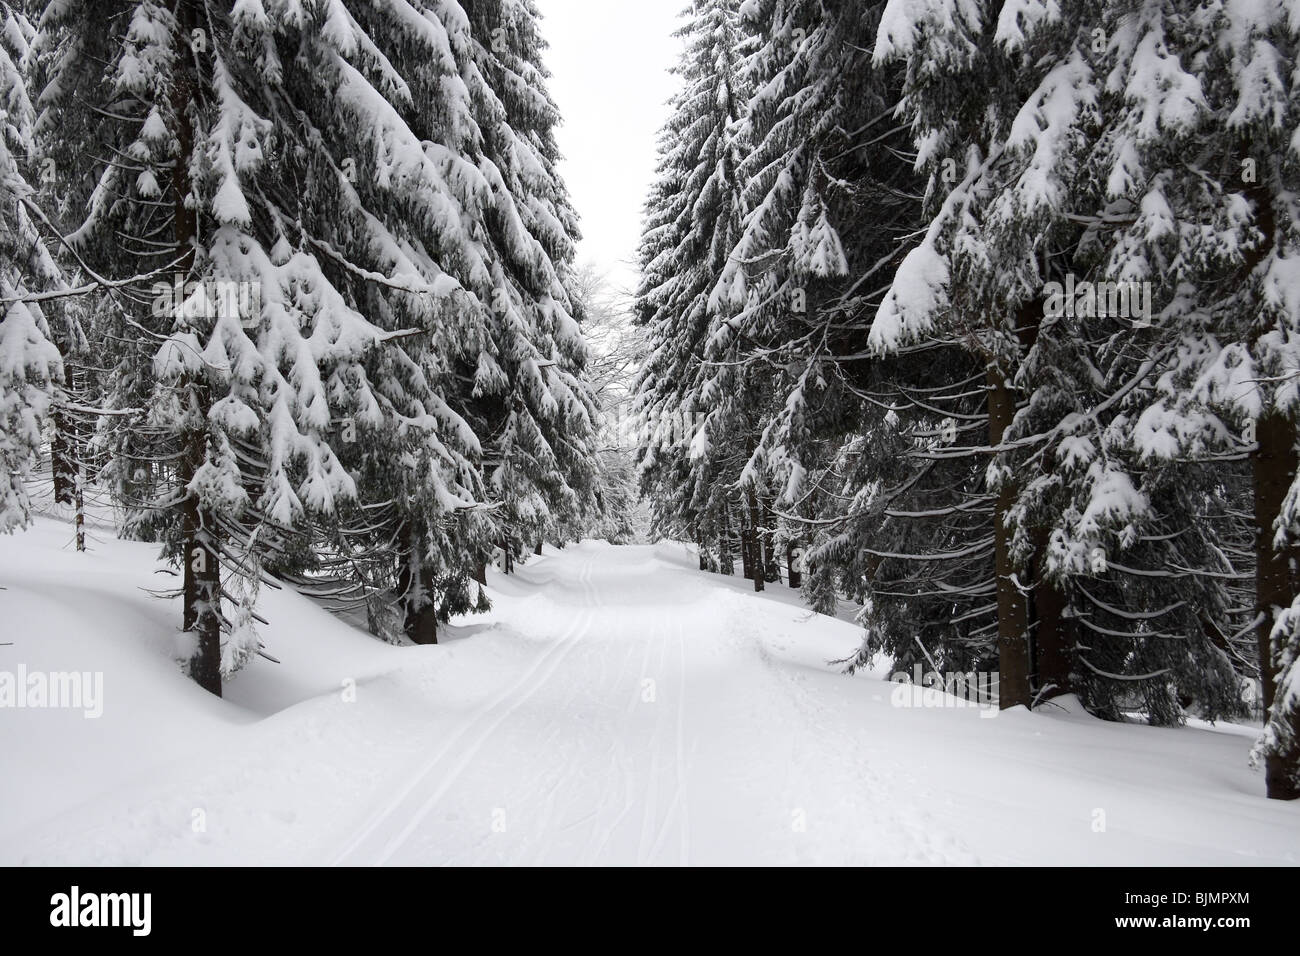 Cross country ski trail, Jakuszyce, Poland. - Stock Image